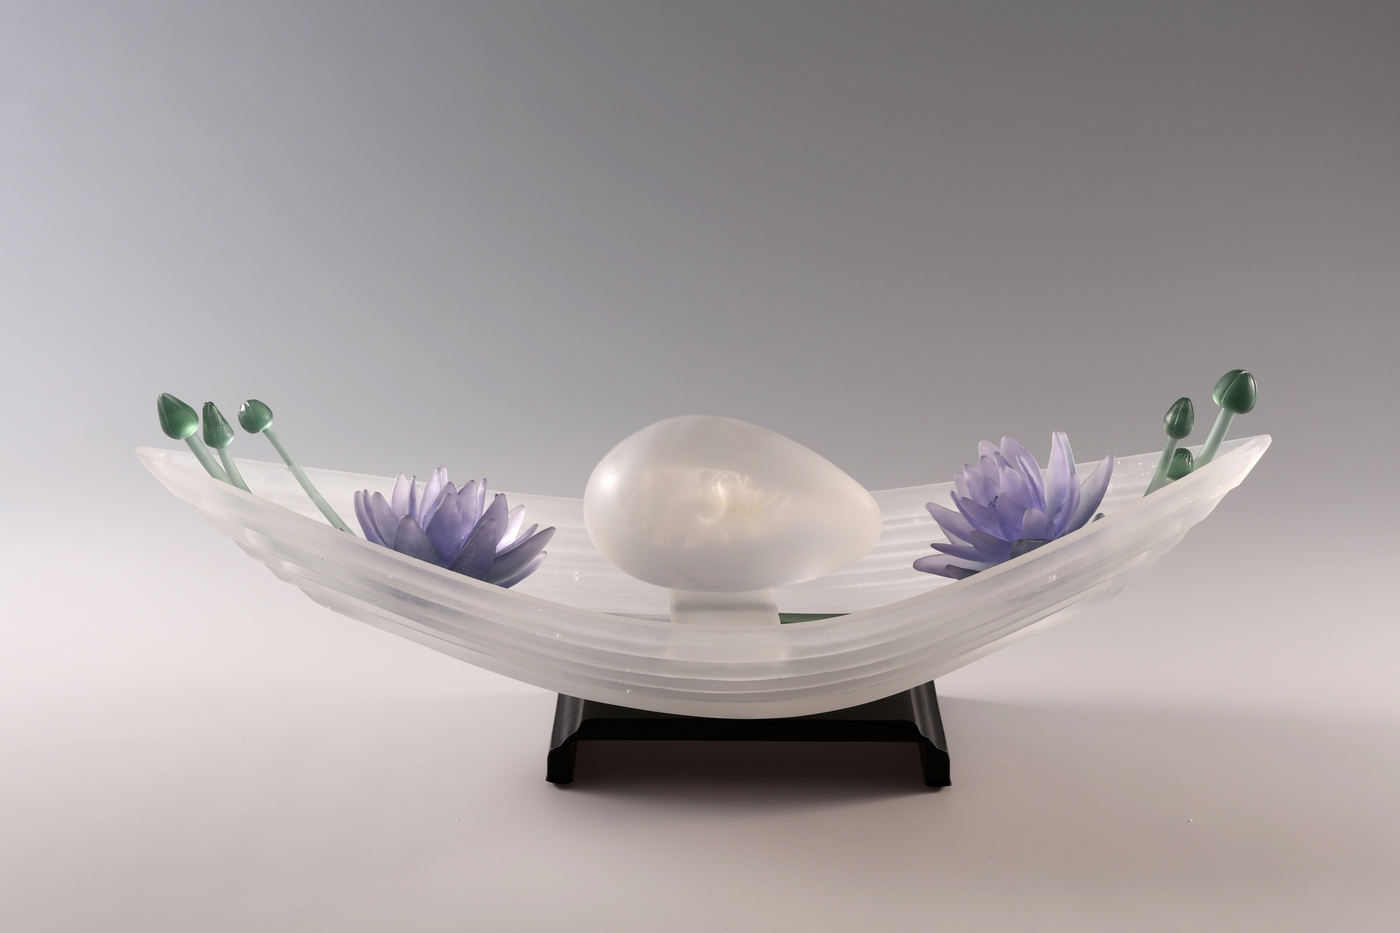 Sculpture of cast glass boat and lavender flowers with green buds on steel base.